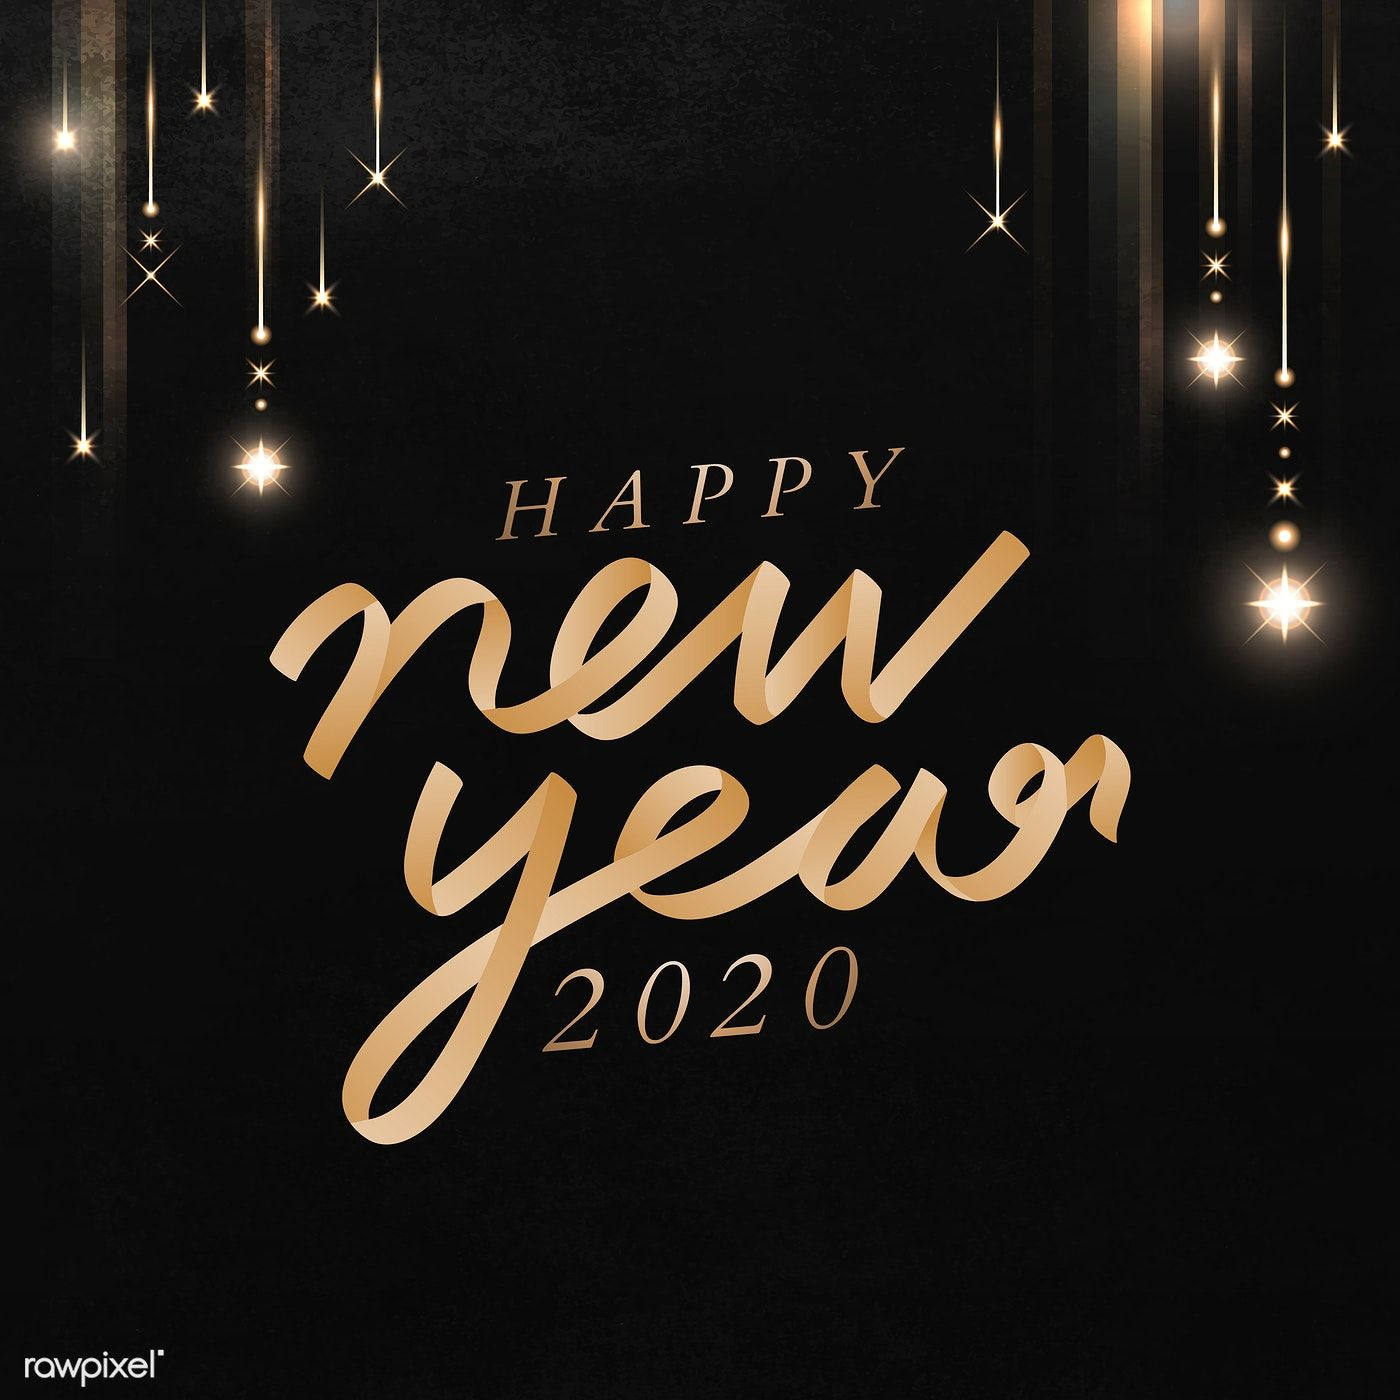 Download Premium Vector Of Happy New Year Black Greeting Card Template Happy New Year Photo Happy New Year Images Greeting Card Template